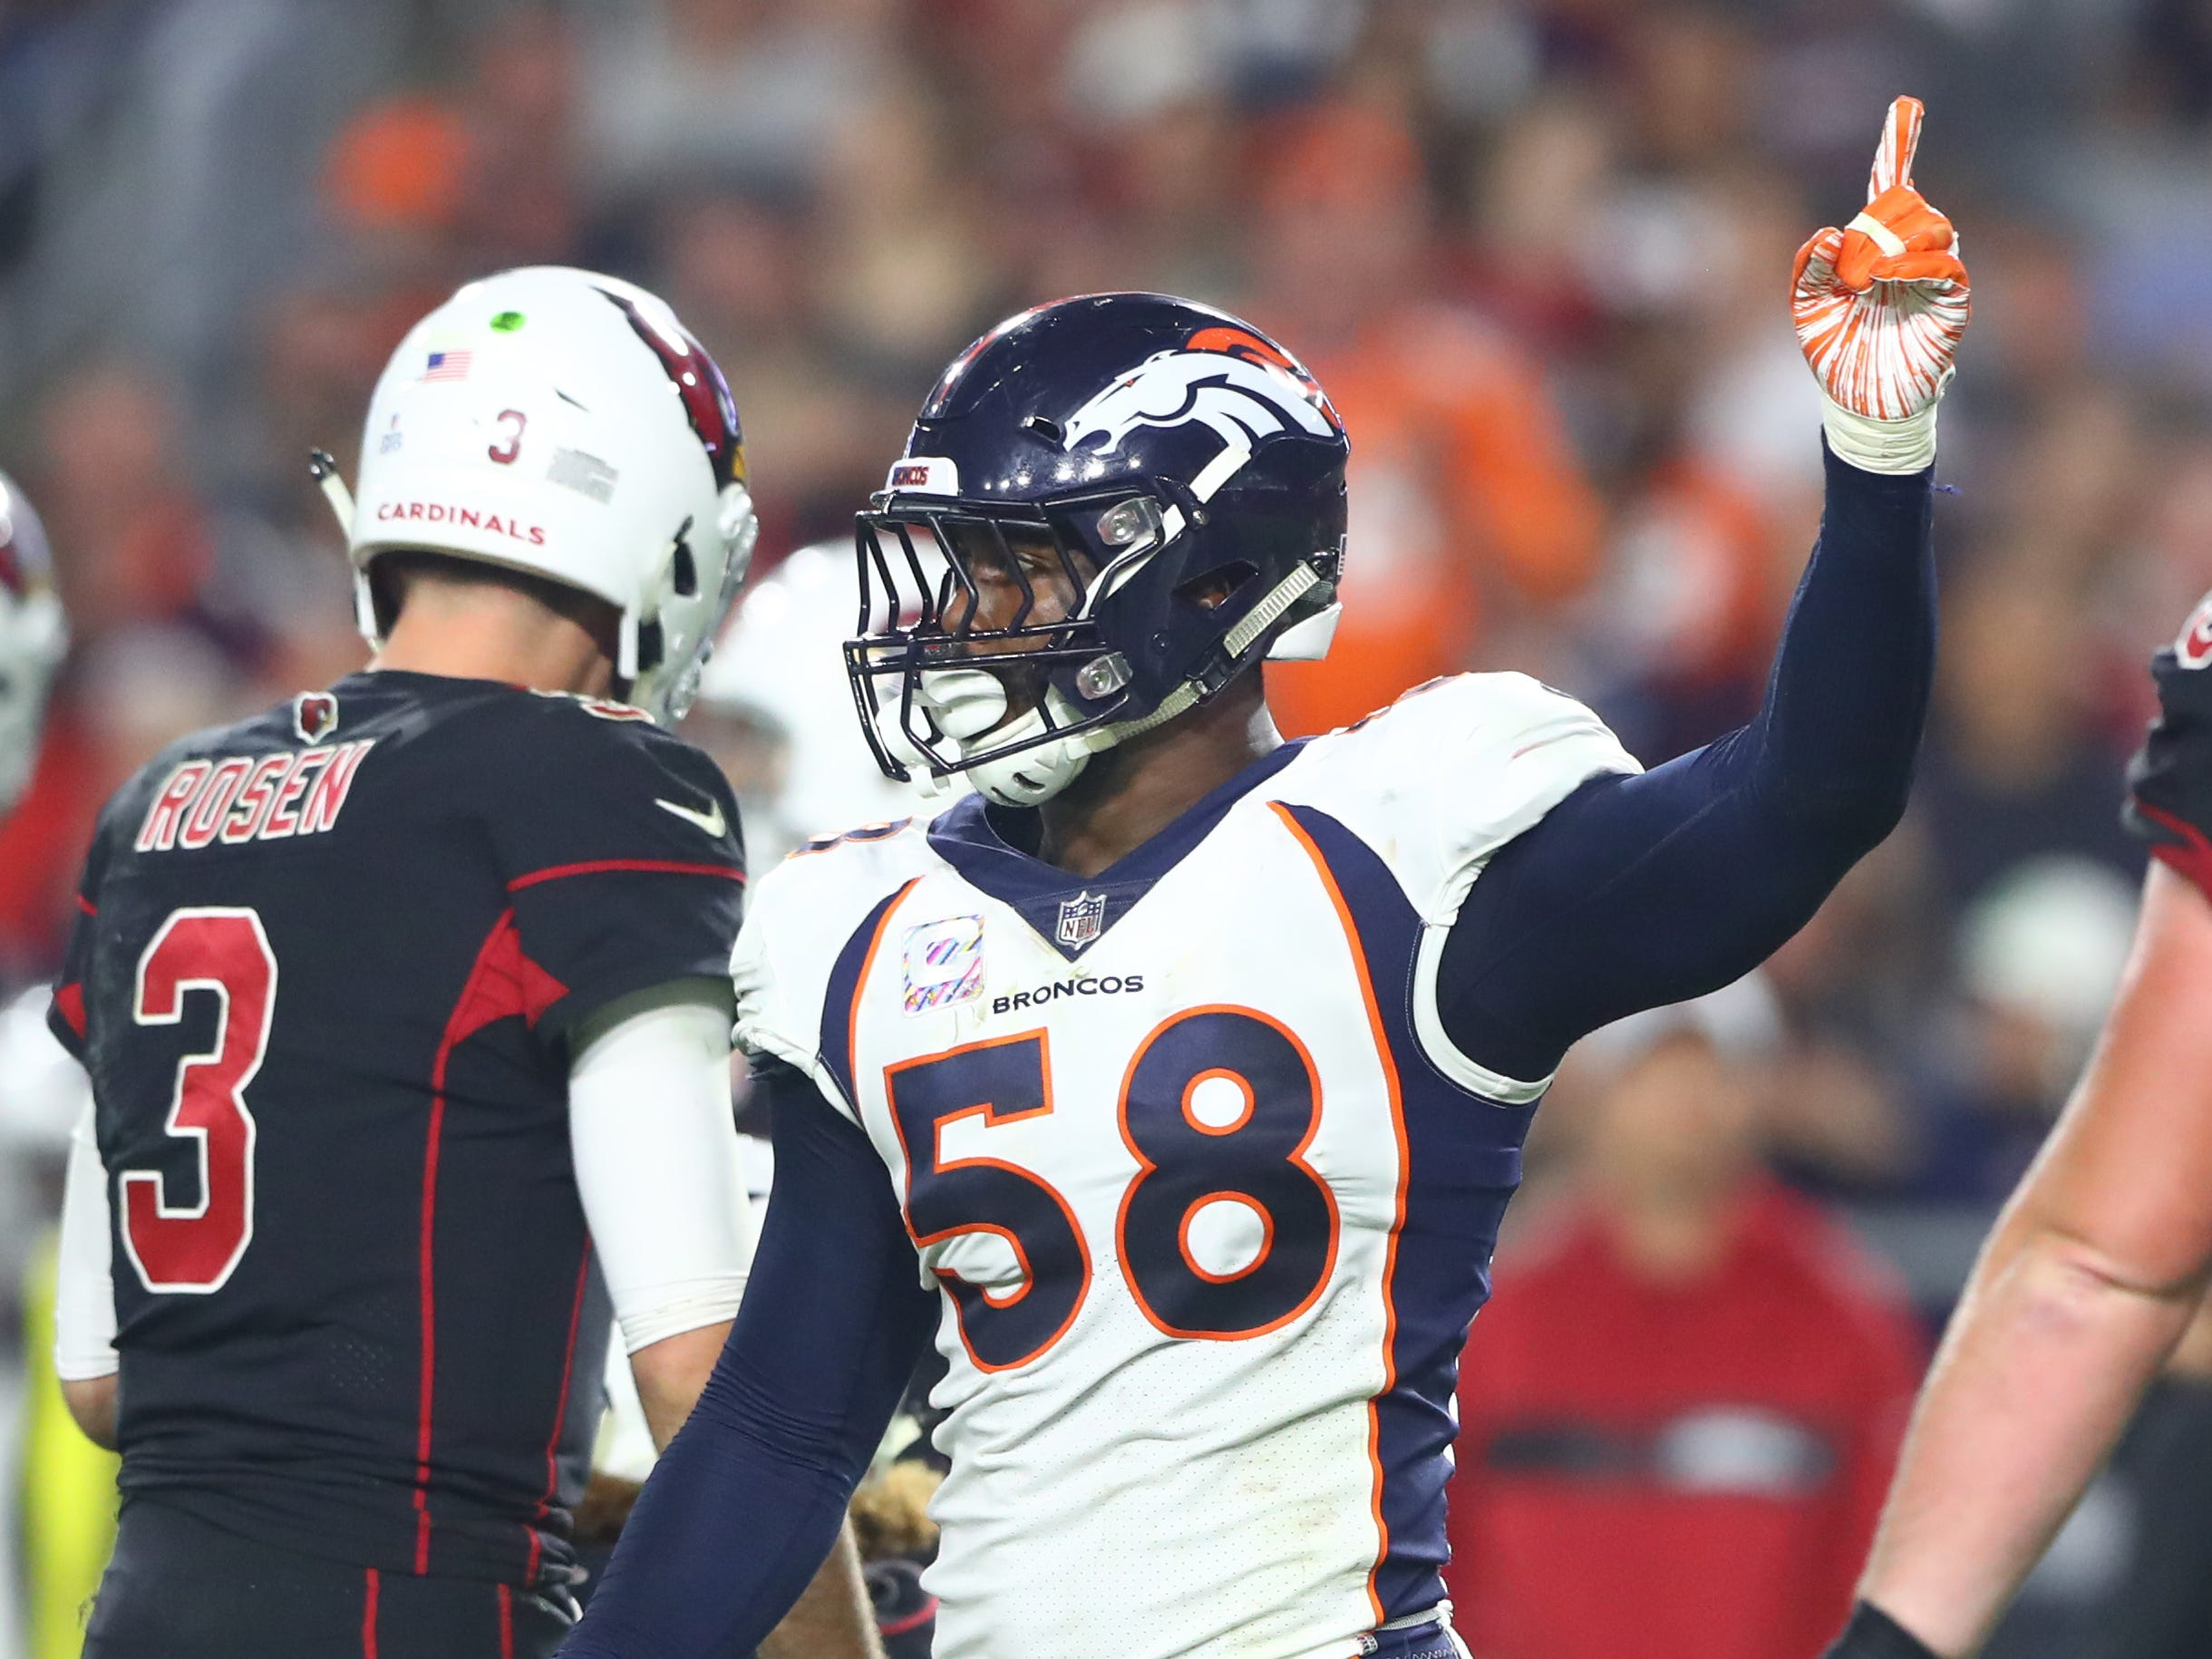 26. Broncos (25): Von Miller and rookie Bradley Chubb are coalescing into pass rushing duo GM John Elway envisioned, their 14 sacks most by two teammates.